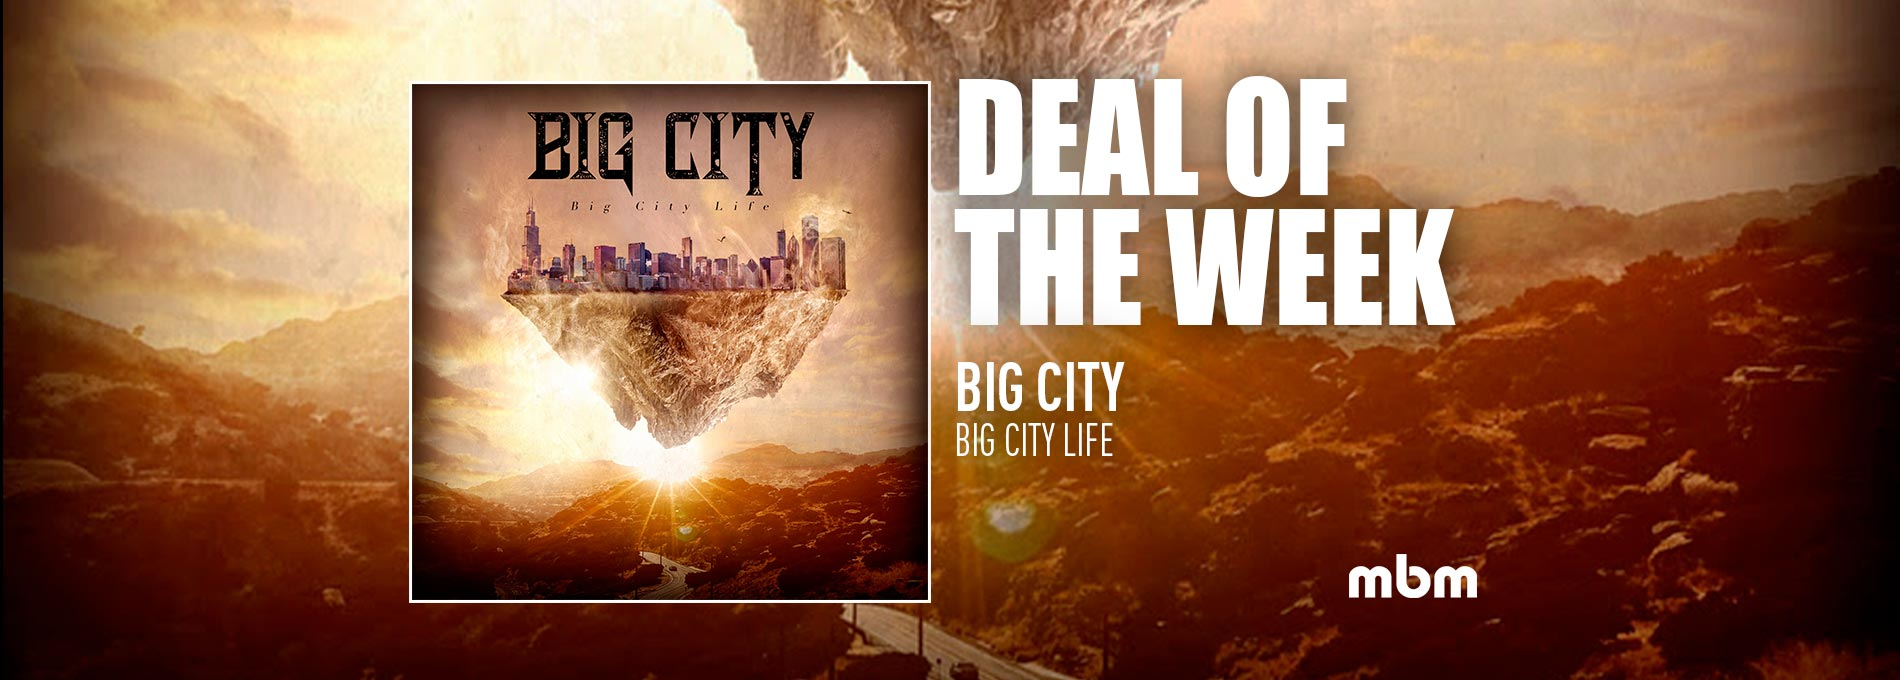 Deal Of The Week: BIG CITY - Big City Life